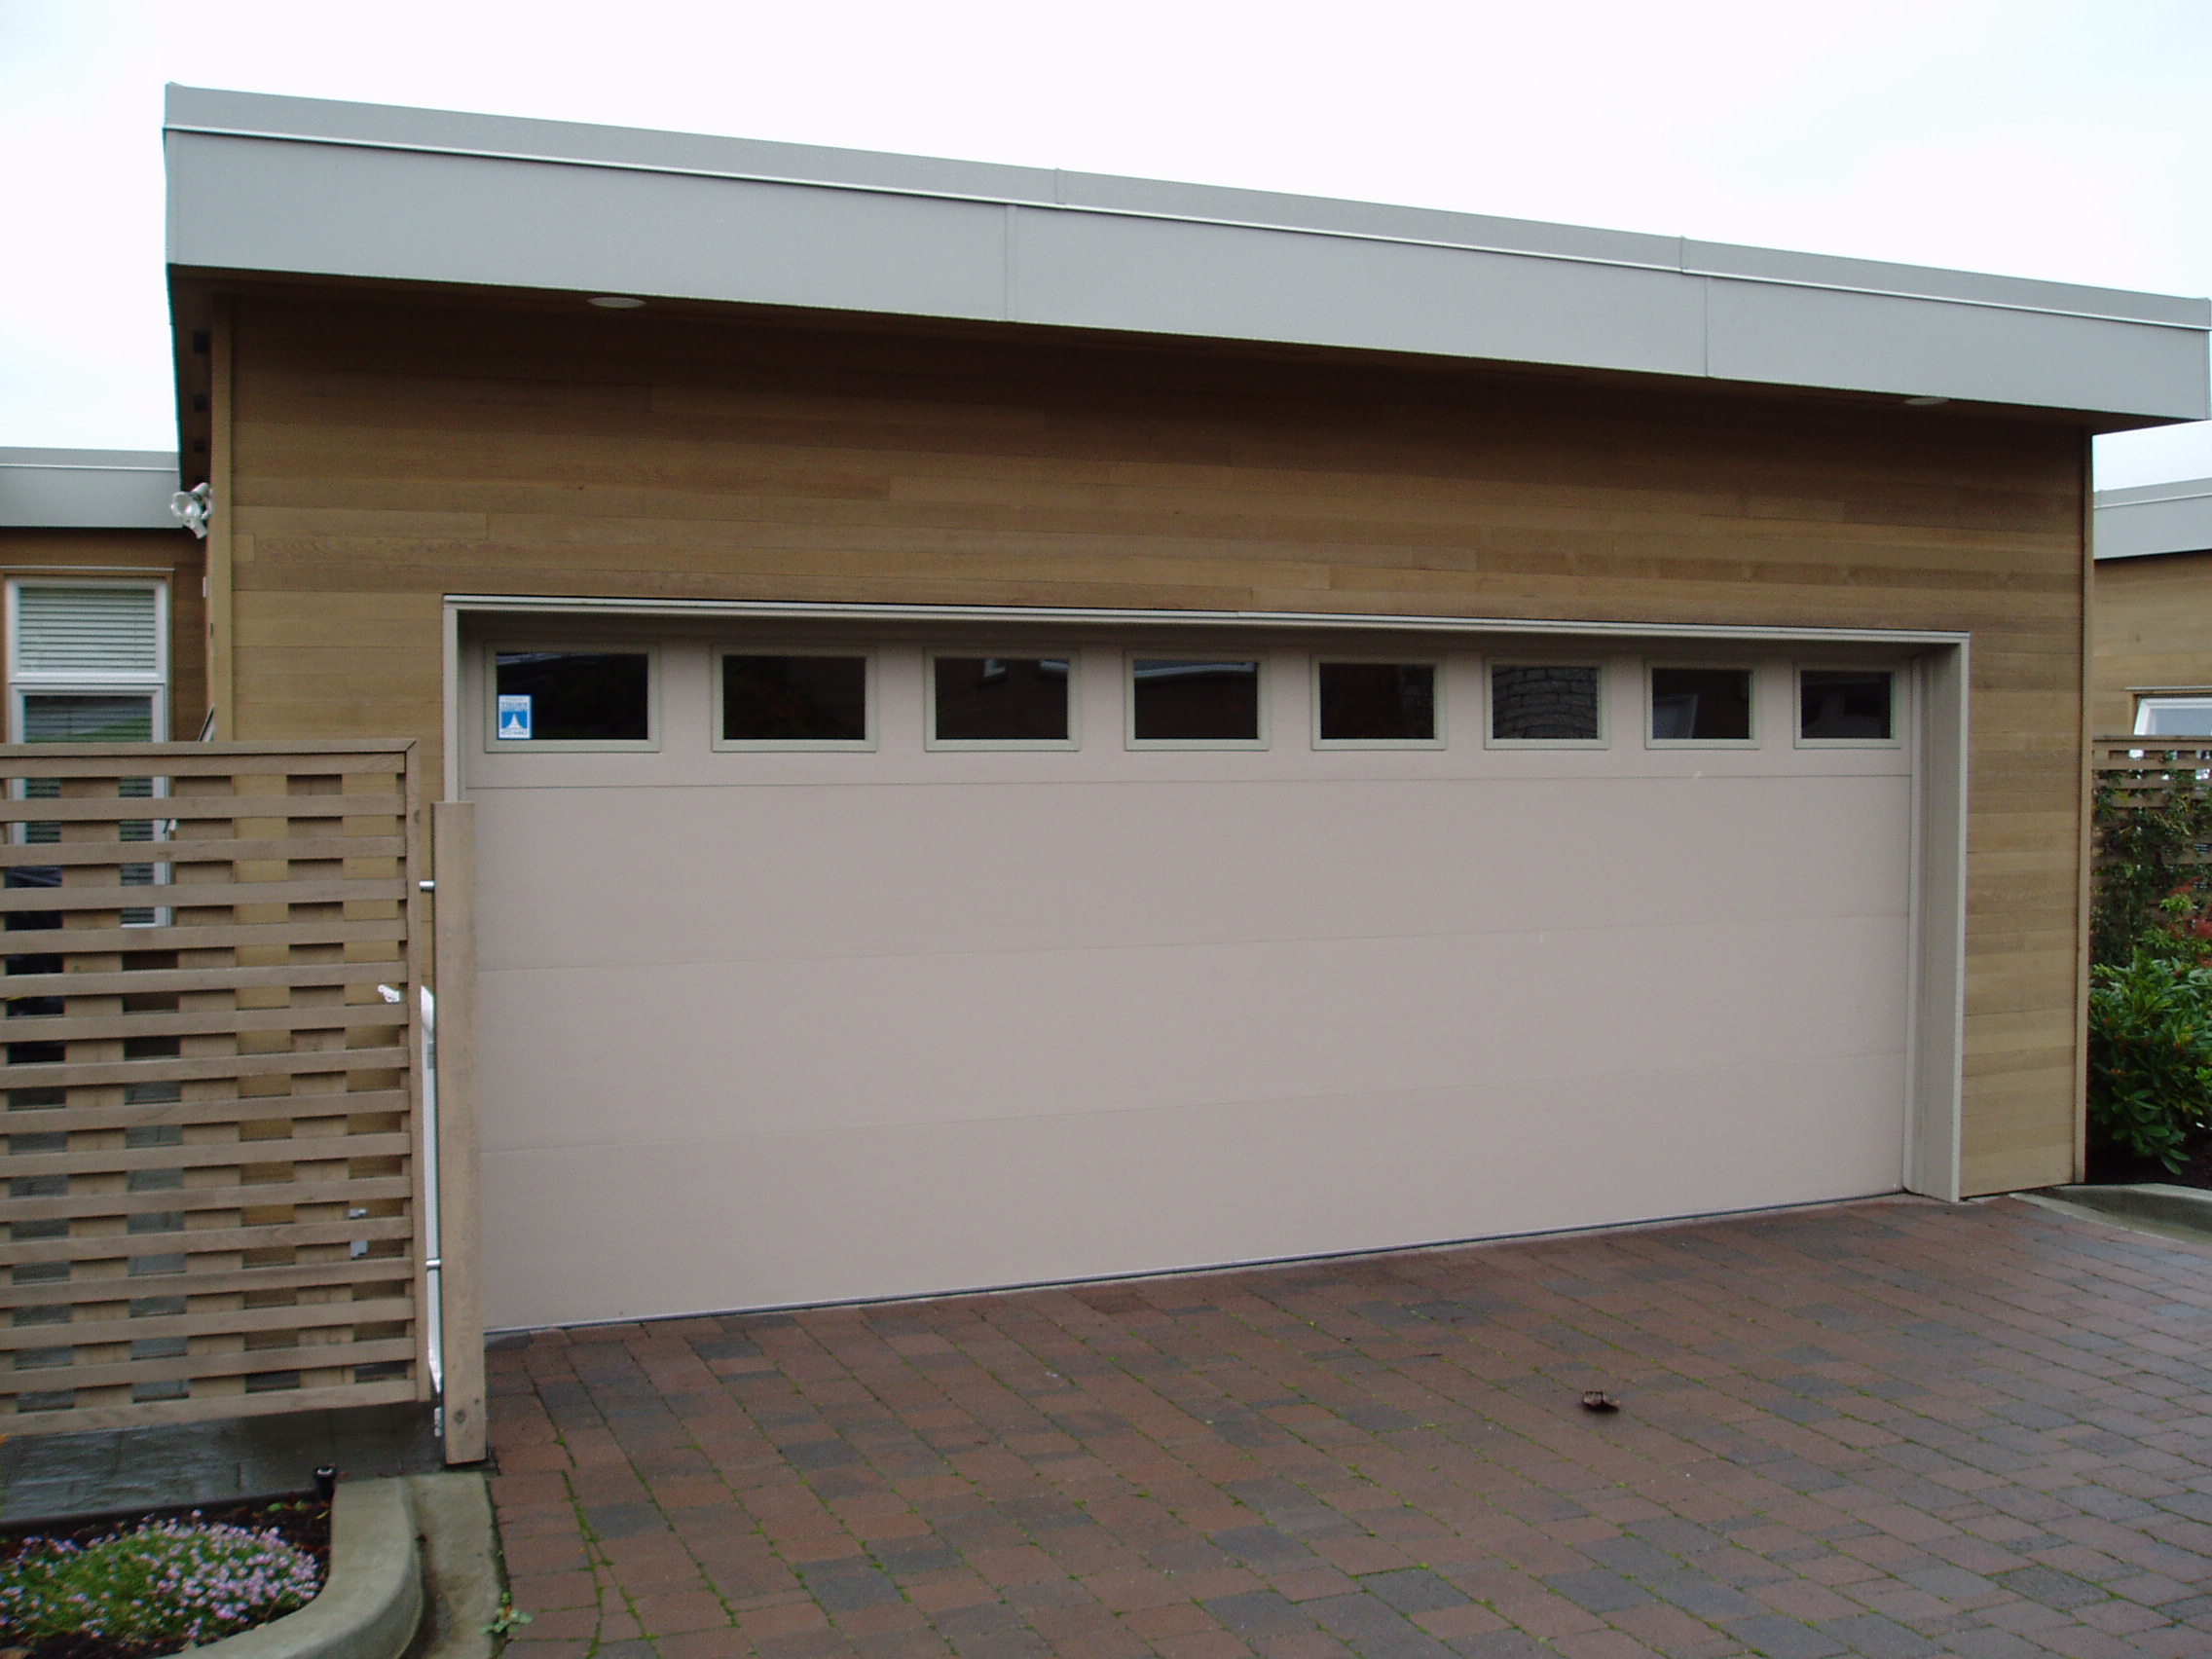 1704 #604E3D PC05 Clopay Premium Series Flush Style Steel Insulated With Plain  wallpaper Clopay Steel Garage Doors 37752272